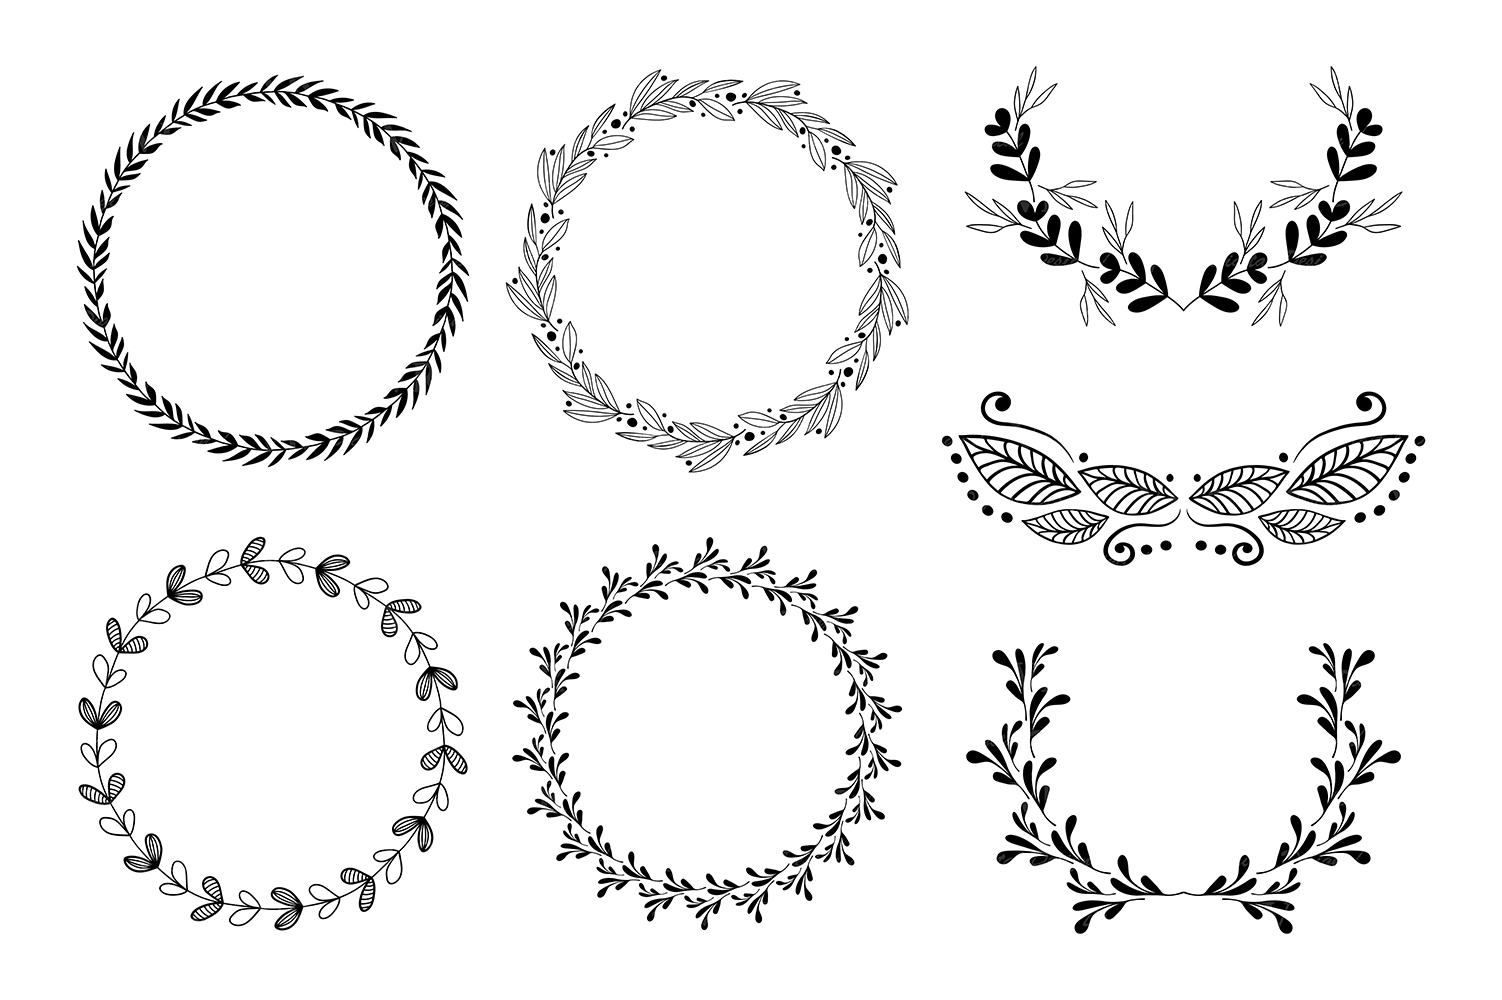 Wreaths Clipart, Hand drawn black design elements, Digital wreath, laurels, leaves and branches, Wedding clipart, Vector example image 2